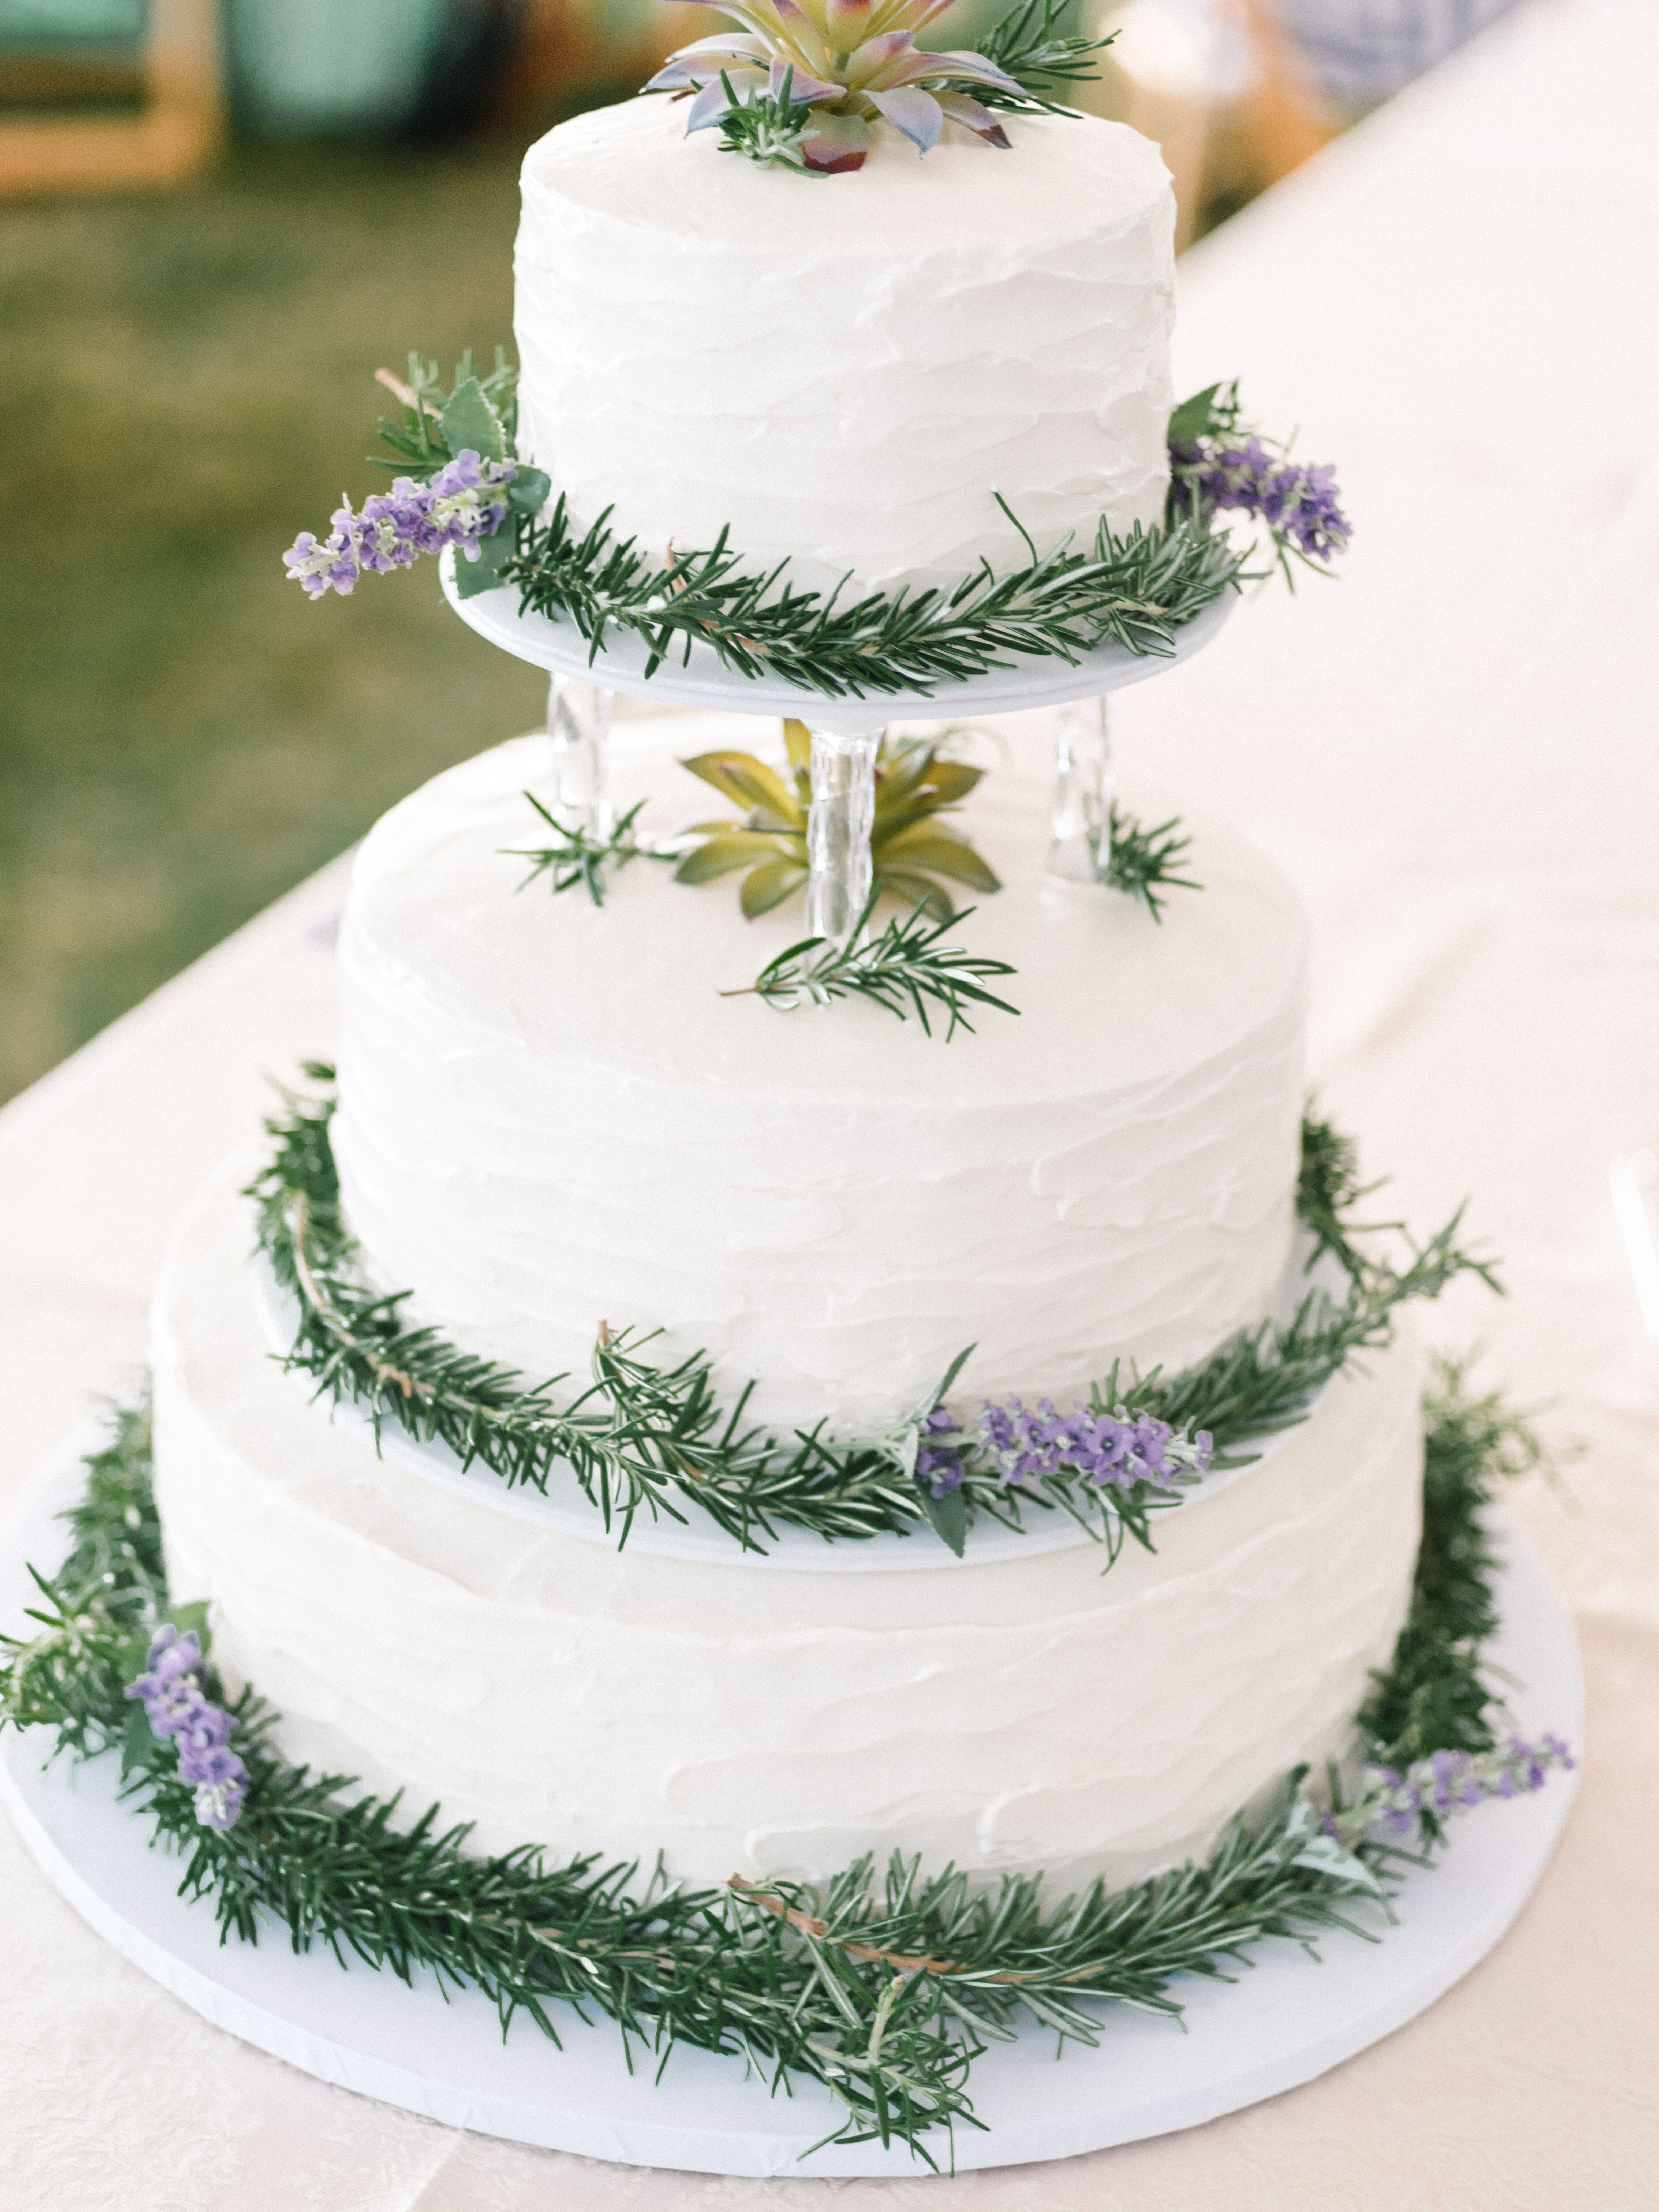 Rustic Buttercream Wedding Cake With Lavender And Rosemary Sprigs